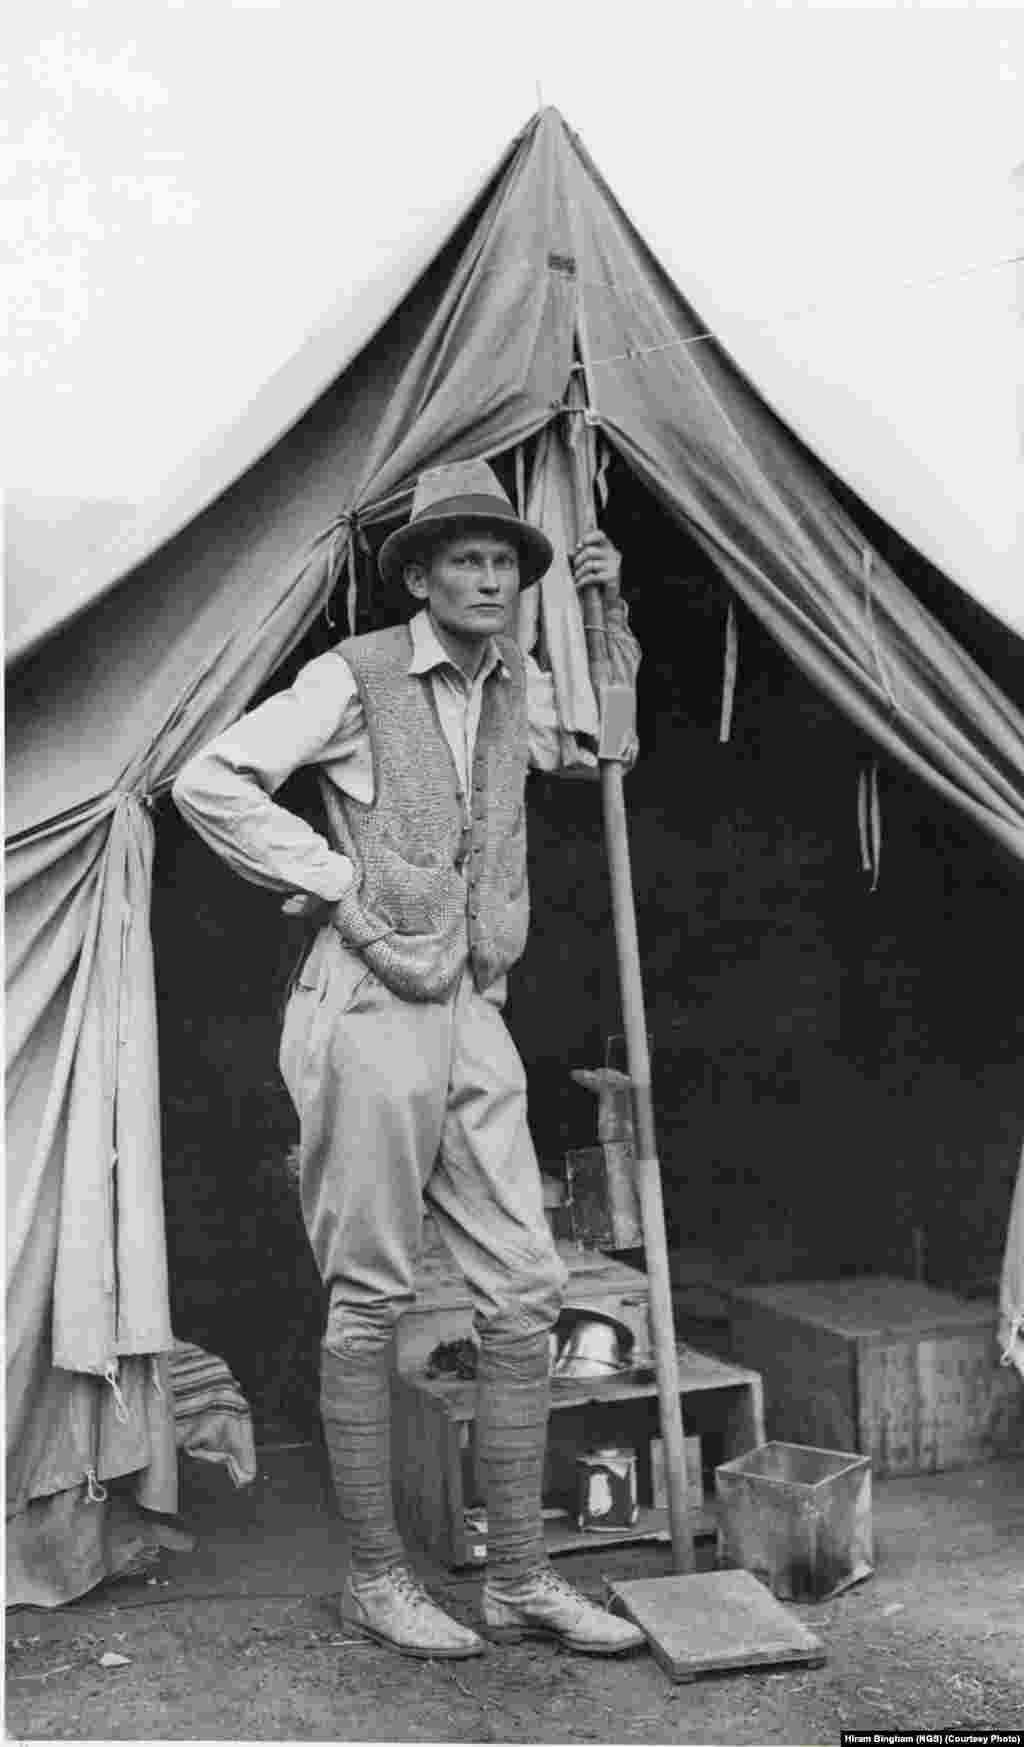 Hiram Bingham poses for an informal picture in front of his tent at Machu Picchu, the lost mountaintop city of the Inca in the Peruvian Andes. National Geographic supported Bingham's excavations at the site from 1912 to 1915.